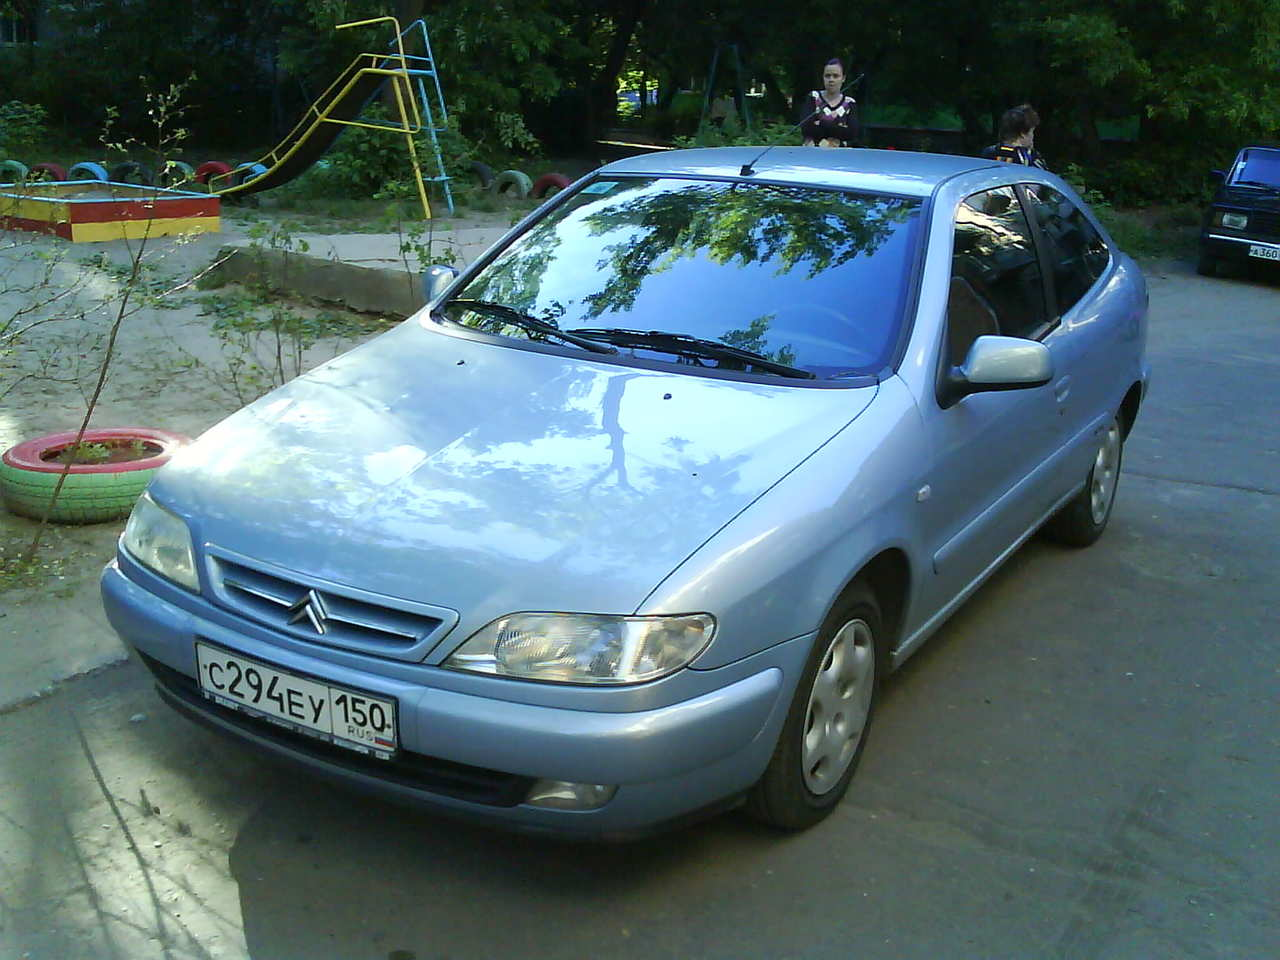 2000 citroen xsara pictures 1800cc gasoline ff manual. Black Bedroom Furniture Sets. Home Design Ideas